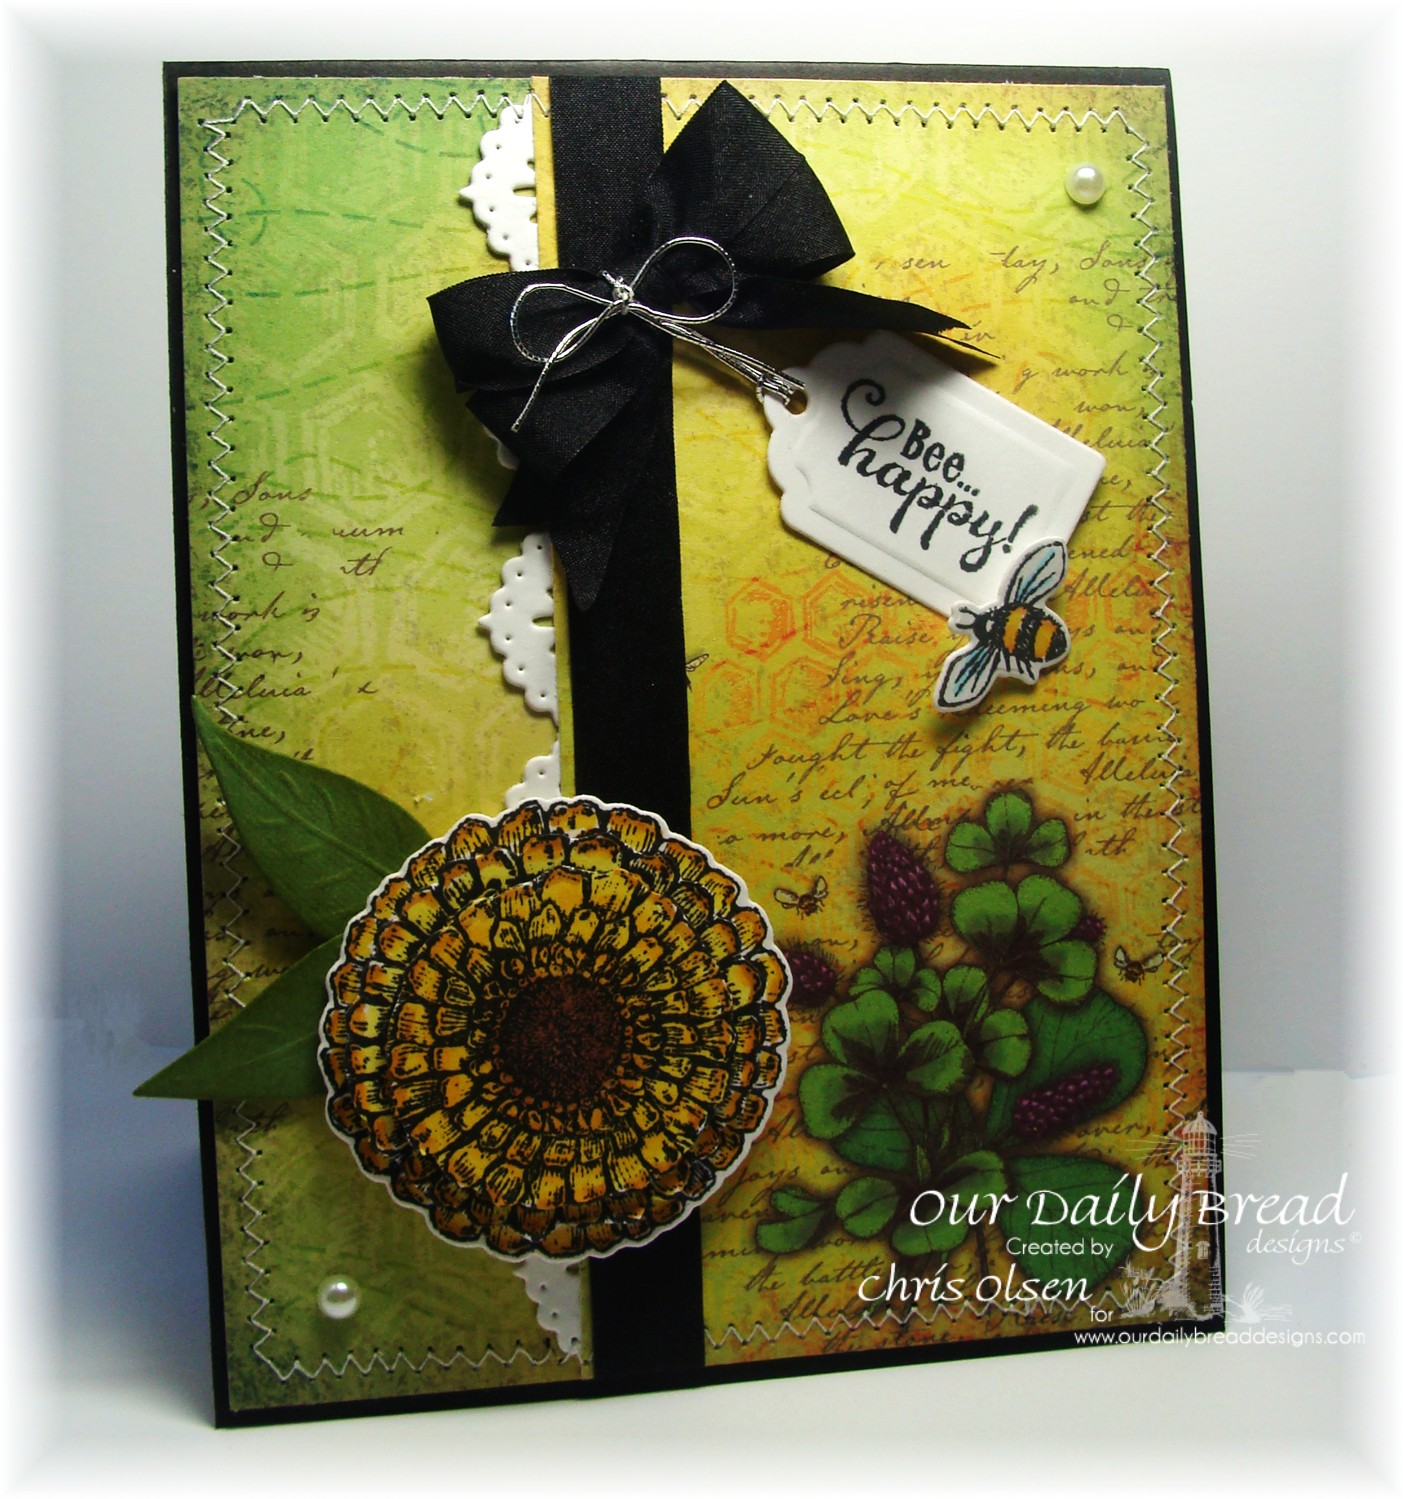 Stamps - Our Daily Bread Designs Zinnia, Be Happy, ODBD Custom Zinnia and Leaves Die, ODBD Custom Recipe Card and Tags Dies, ODBD Custom Beautiful Borders Dies, ODBD Blooming Garden Paper Collection